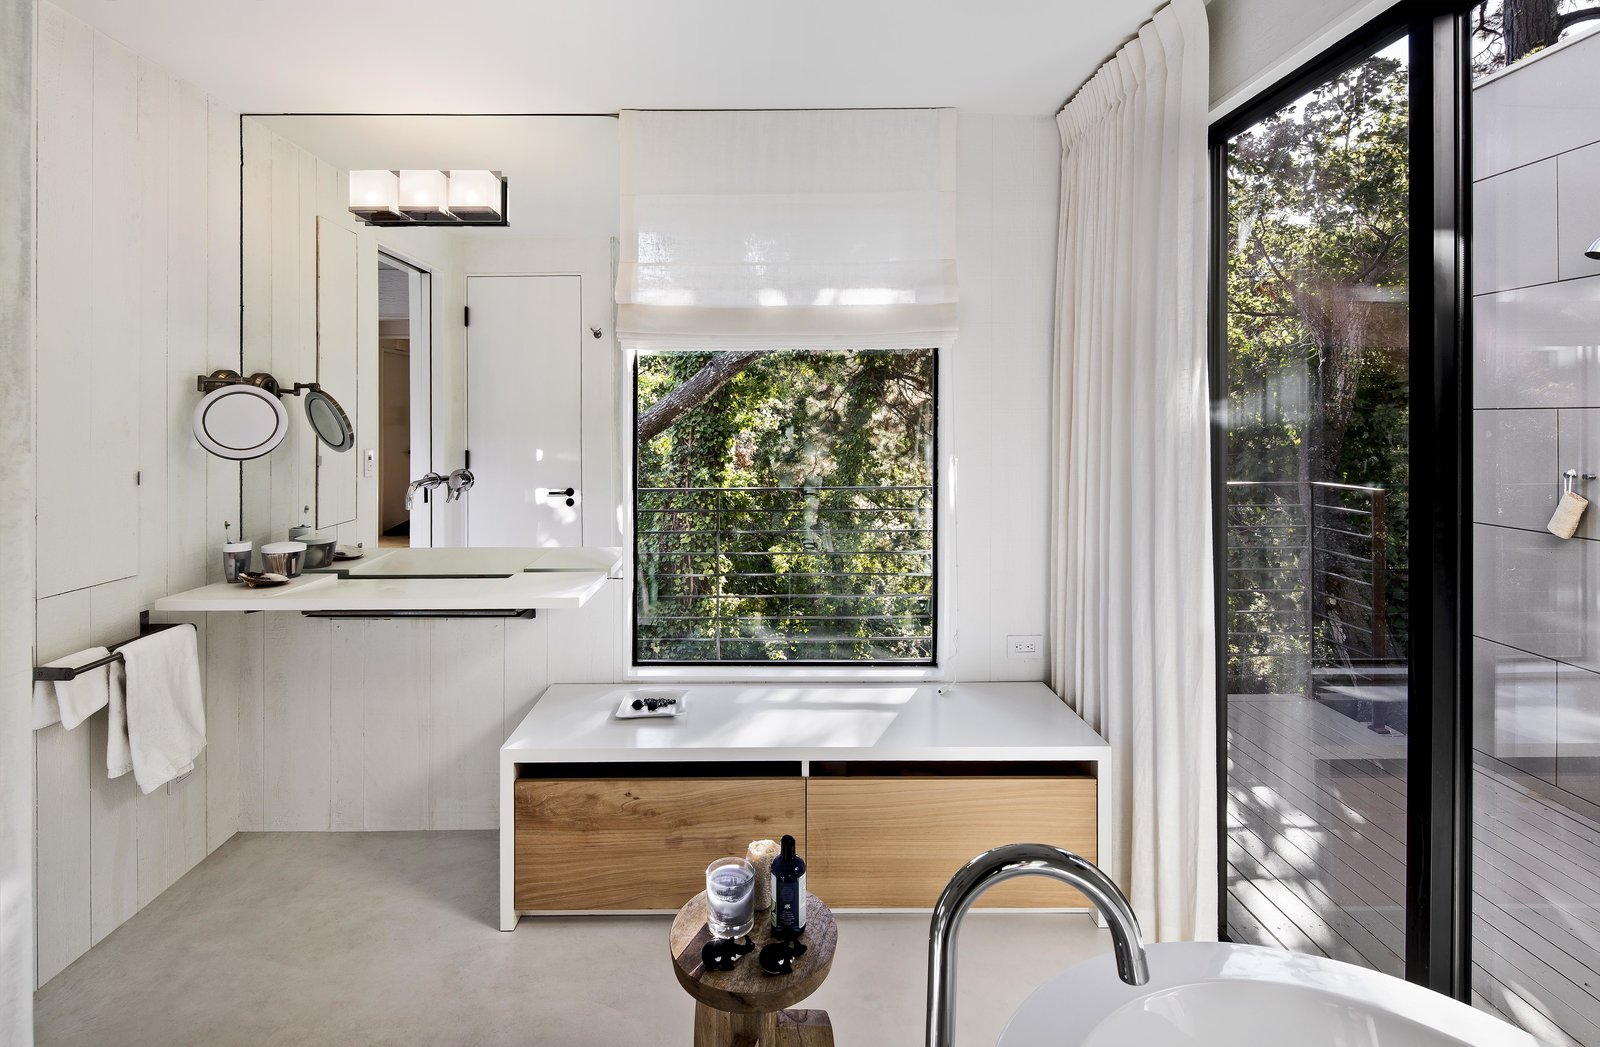 The updated master bathroom features white concrete floors, painted wood walls, and veneer plaster ceilings. Light streams in through the original window, and an added sliding door opens to an outdoor shower. A single Washplane sink by Omvivo sits beneath the mirror, with additional faucets for the shower and Duravit bathtub by Hansgrohe. A stool from Roost holds bath essentials.